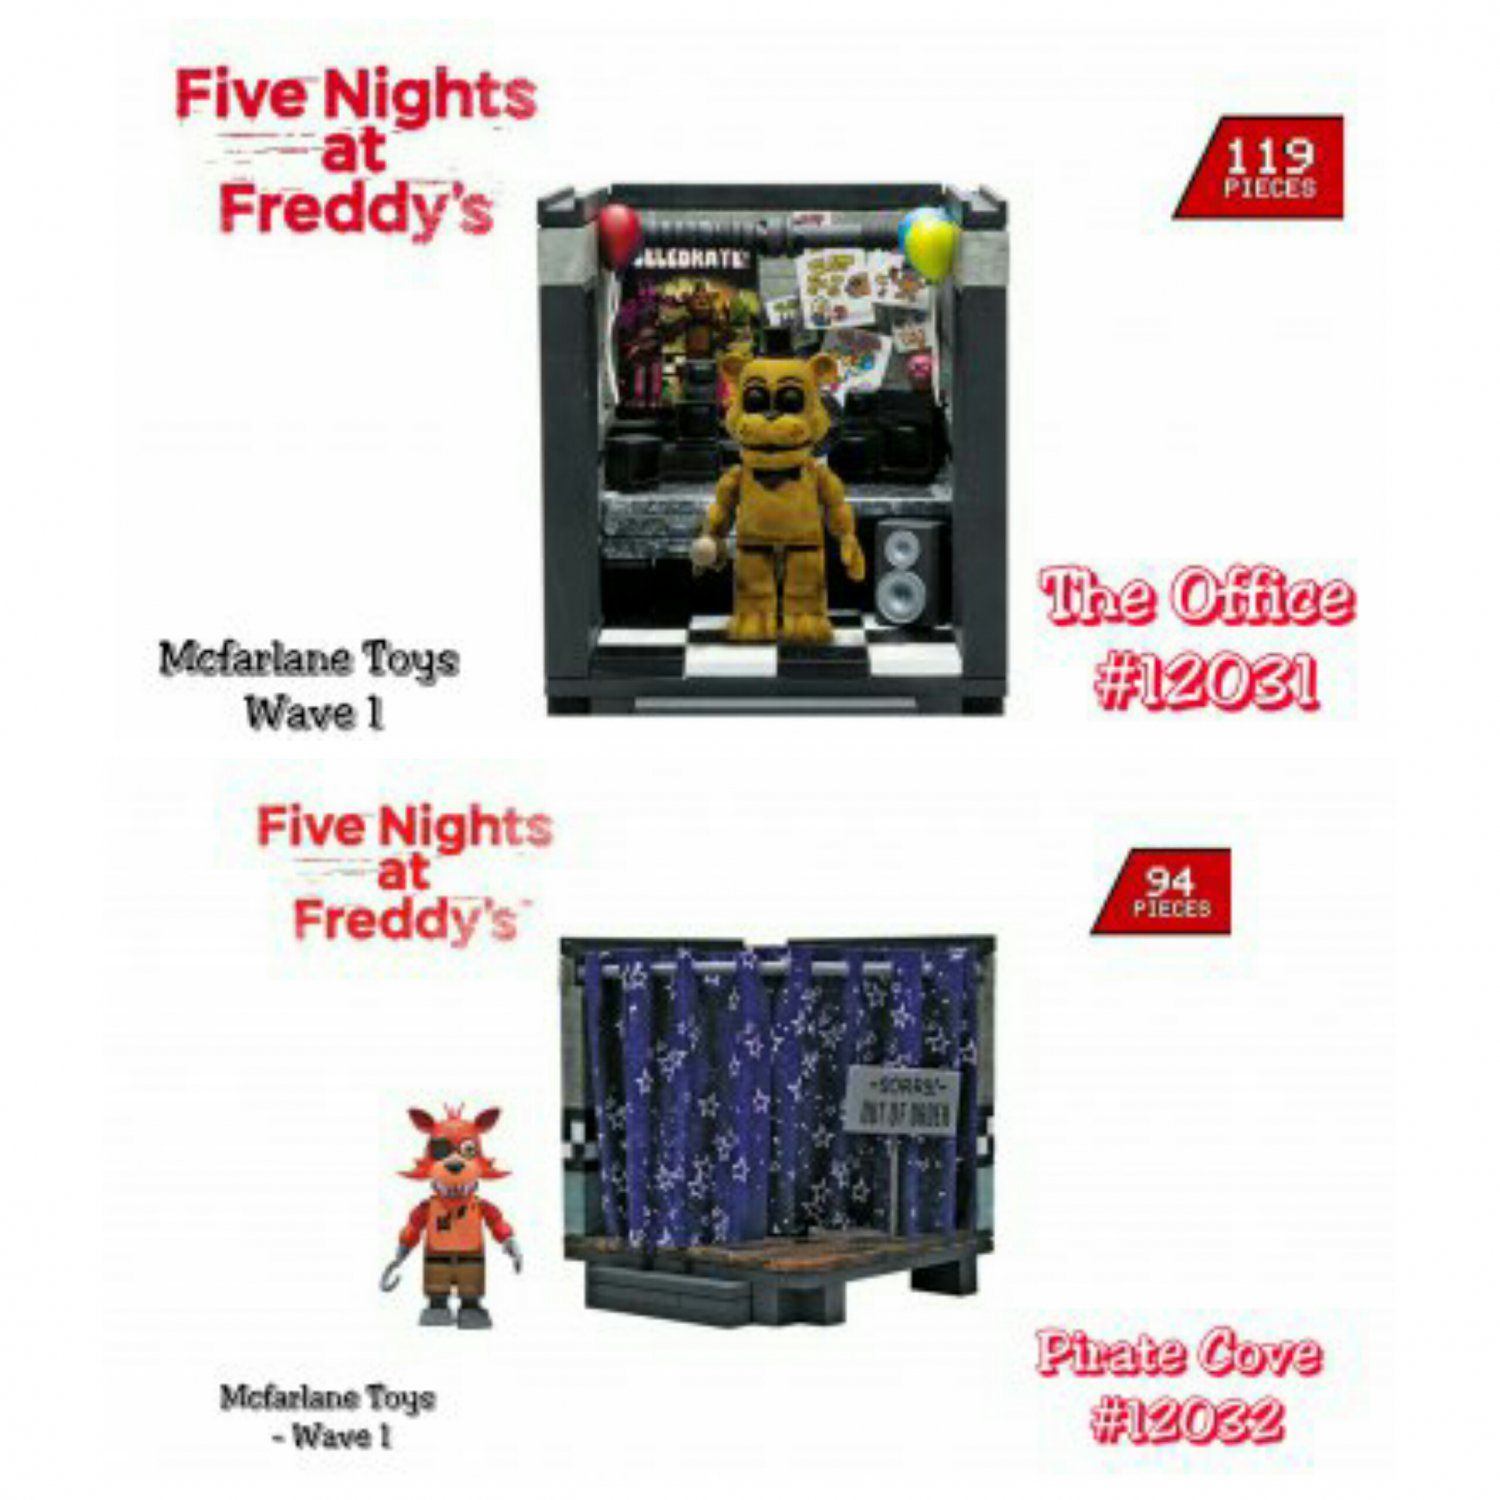 More five nights at freddy s construction sets coming soon - Set Of 2 Five Nights At Freddy S Fnaf Wave 1 Golden Freddy The Office 119 Pieces Foxy Pirate Cove 94 Pieces Mcfarlane Buildable Construction Set